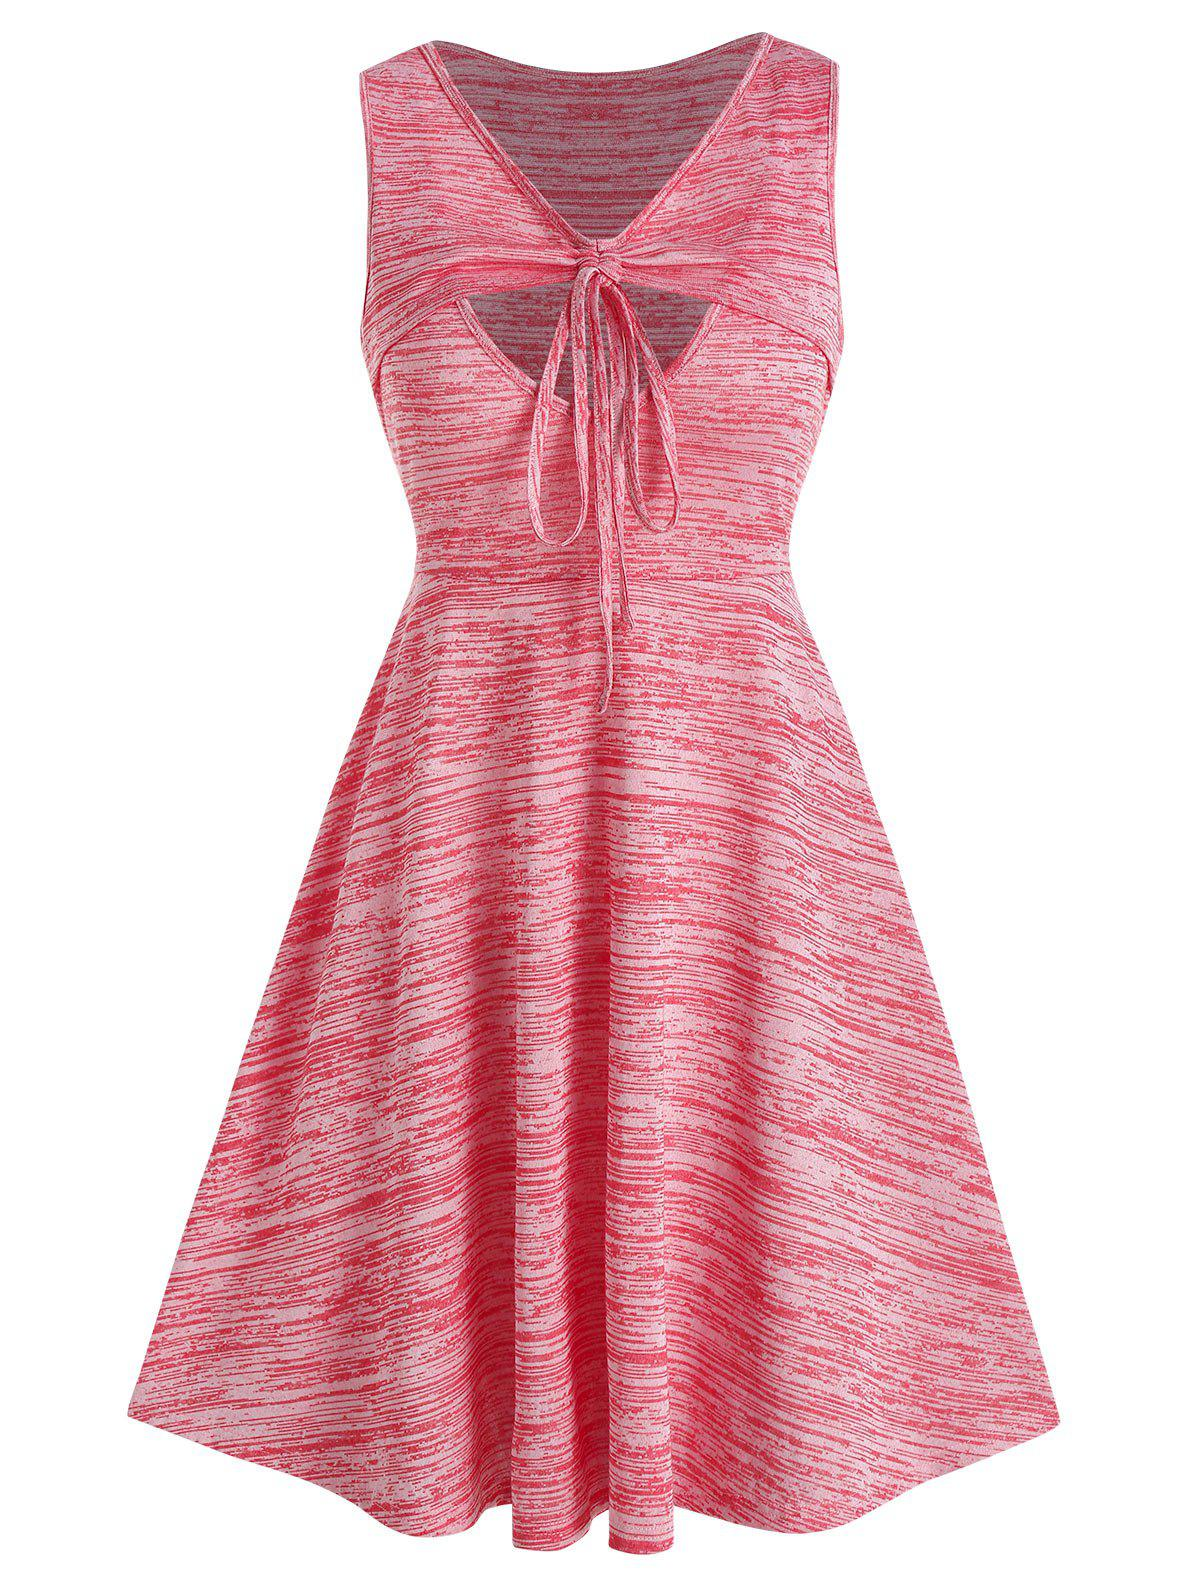 Space Dye Cinched Cutout V Neck Dress - PINK ROSE XL